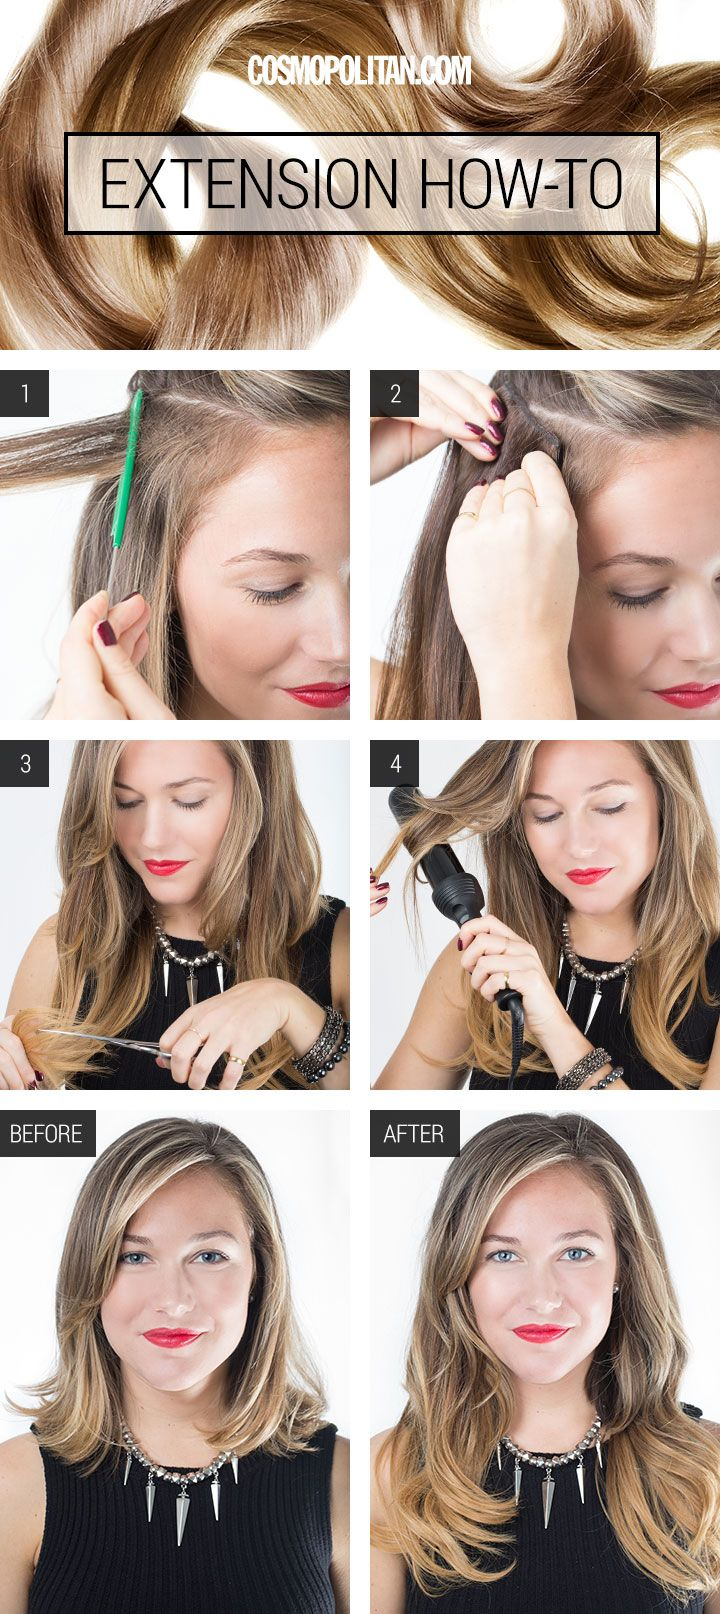 333 best extensions images on pinterest make up beautiful and how to make fake hair extensions look perfect and natural pmusecretfo Images